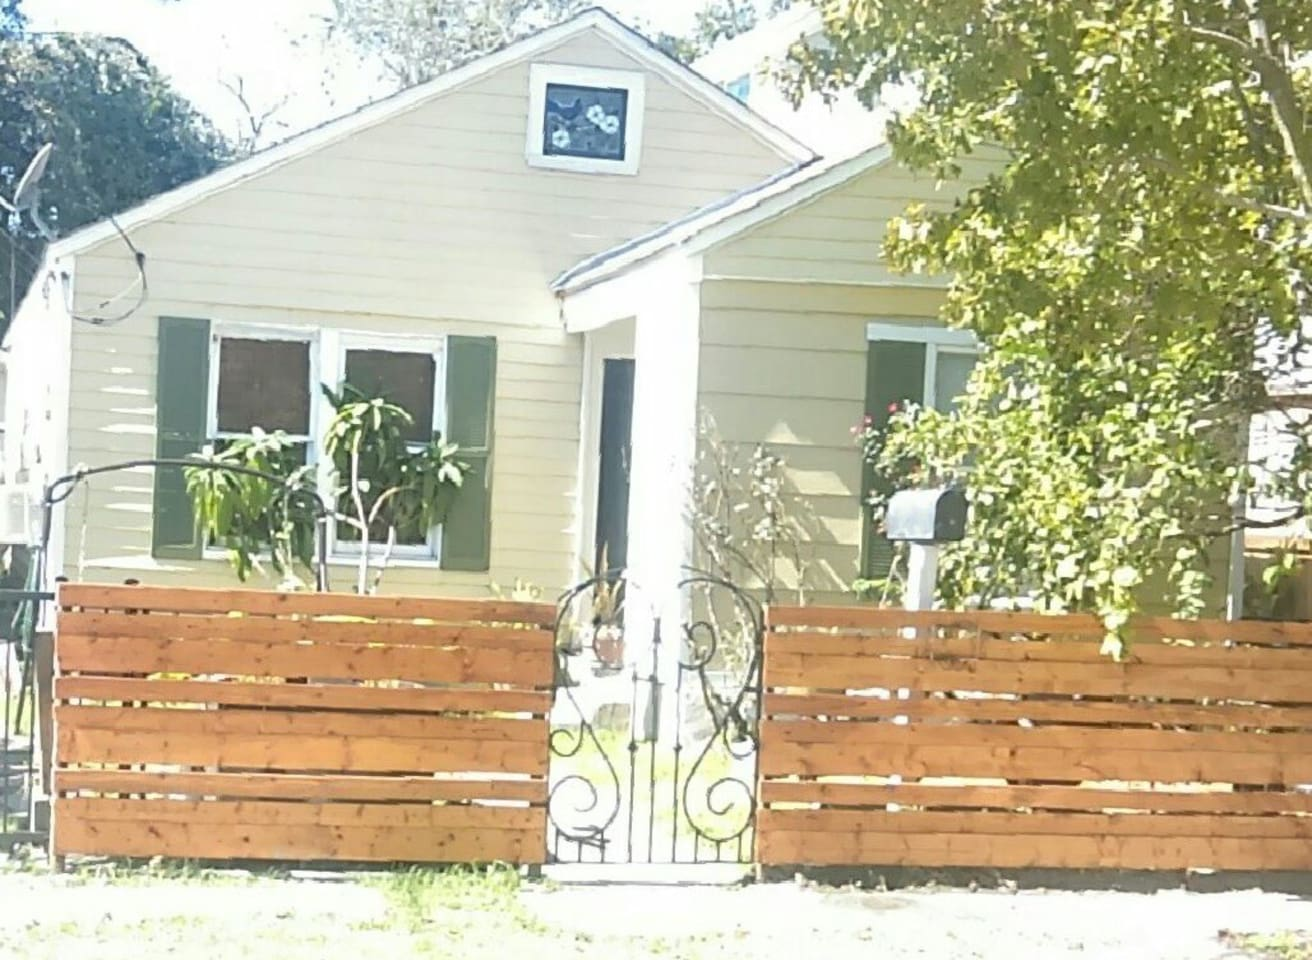 Heights bungalow located in walking distance to Kroger's grocery store, bike & hike trail, and popular restaurants.